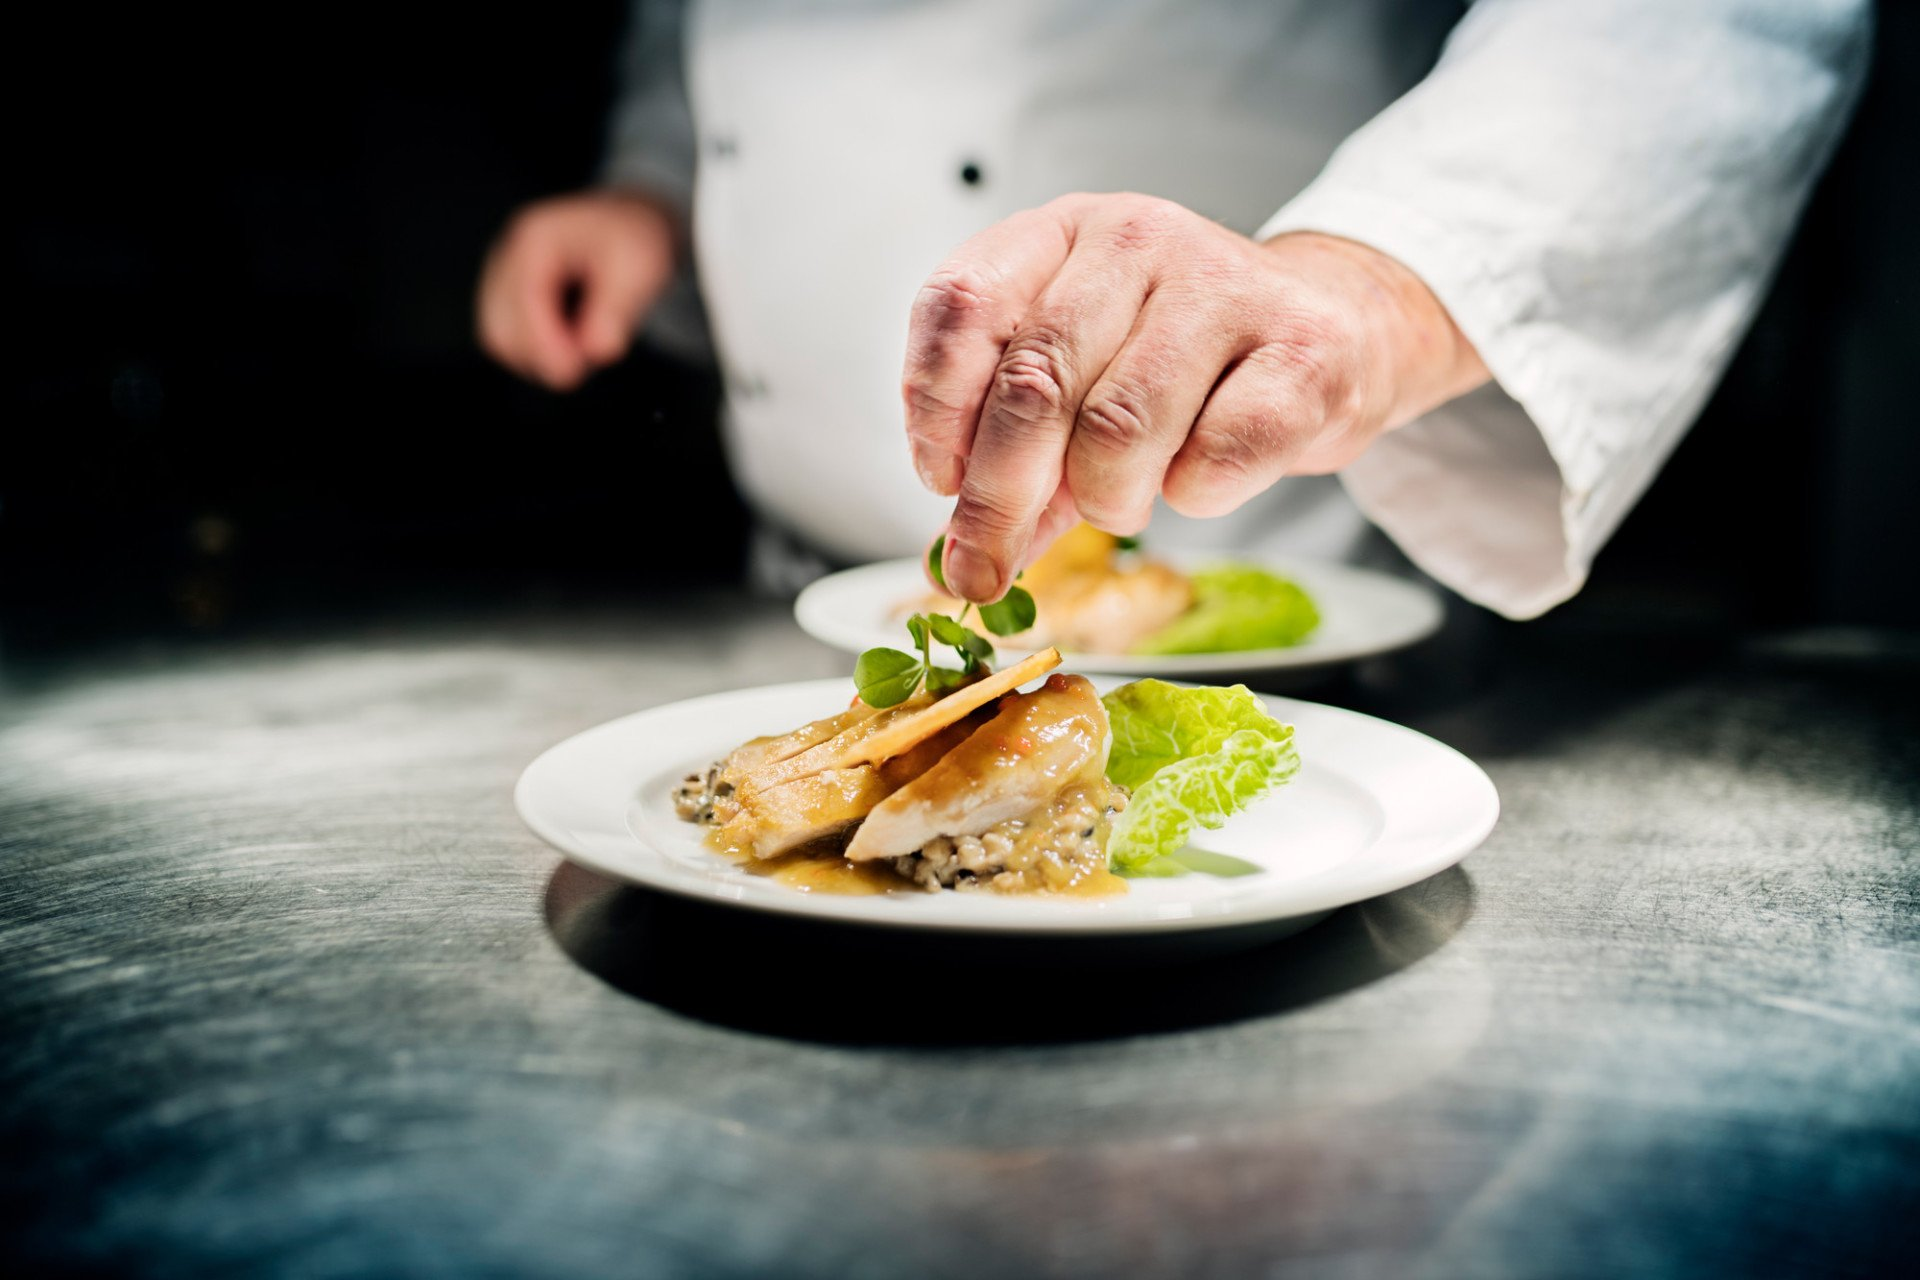 A Chef plating up a meal